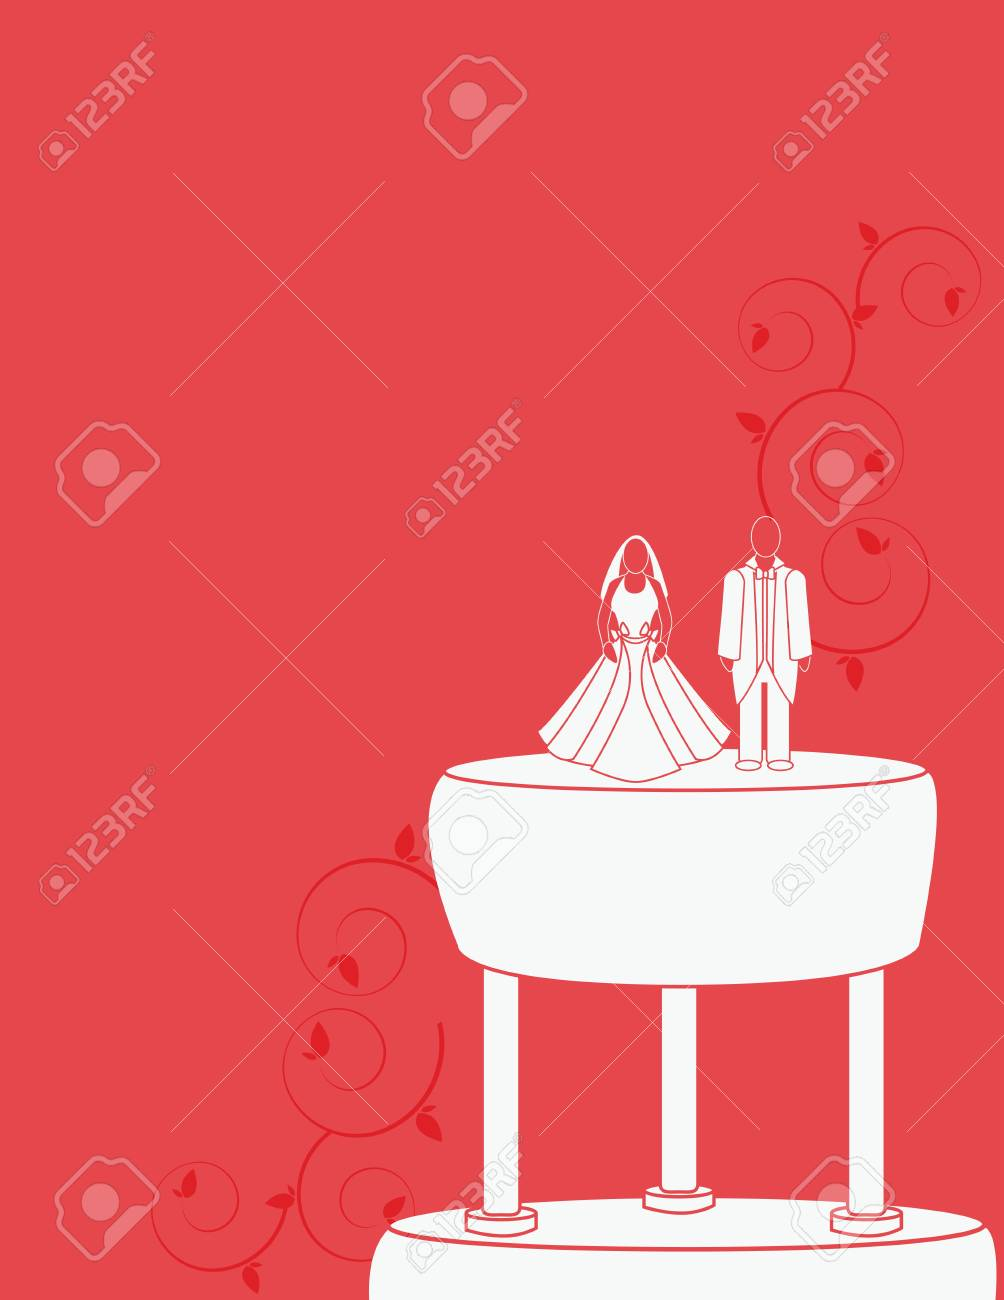 Wedding background for a couple on a cake Stock Vector - 7315111